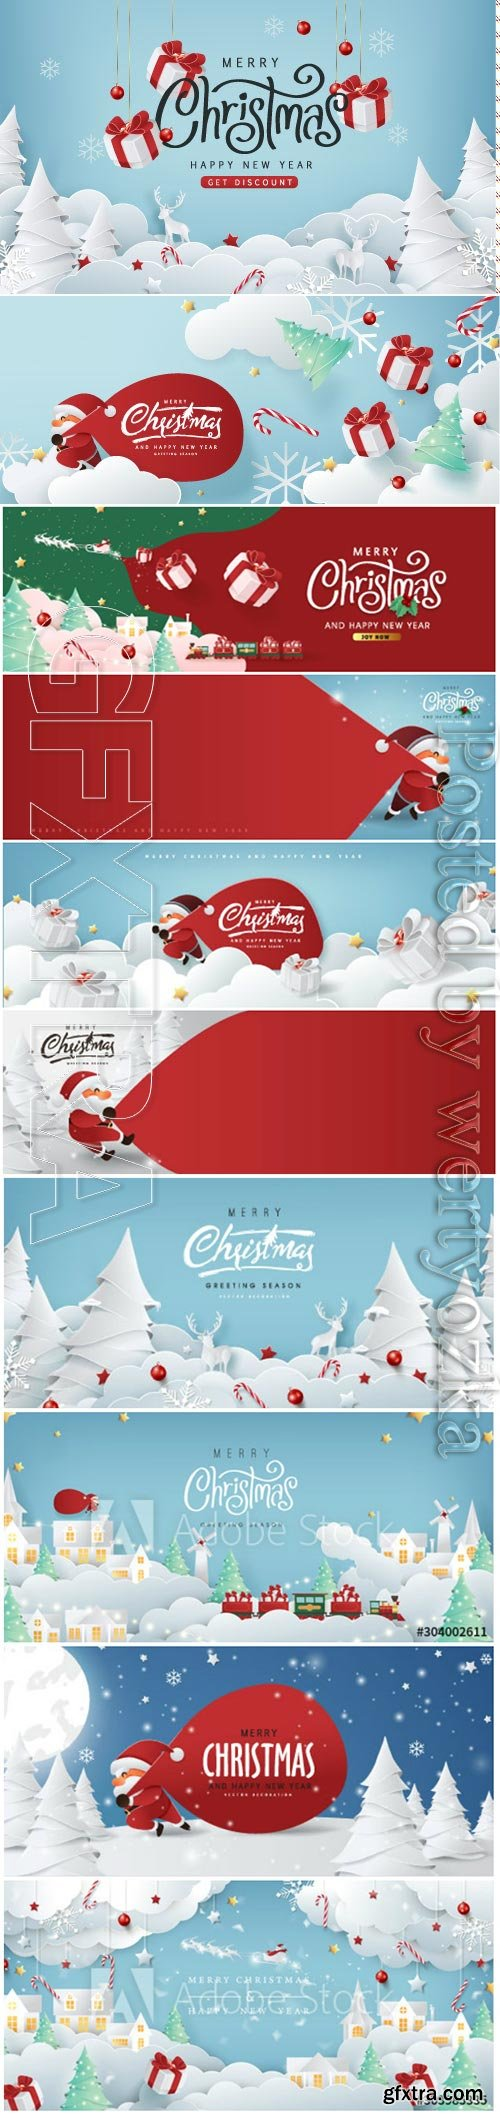 Christmas composition in paper, Santa Claus, christmas gifts